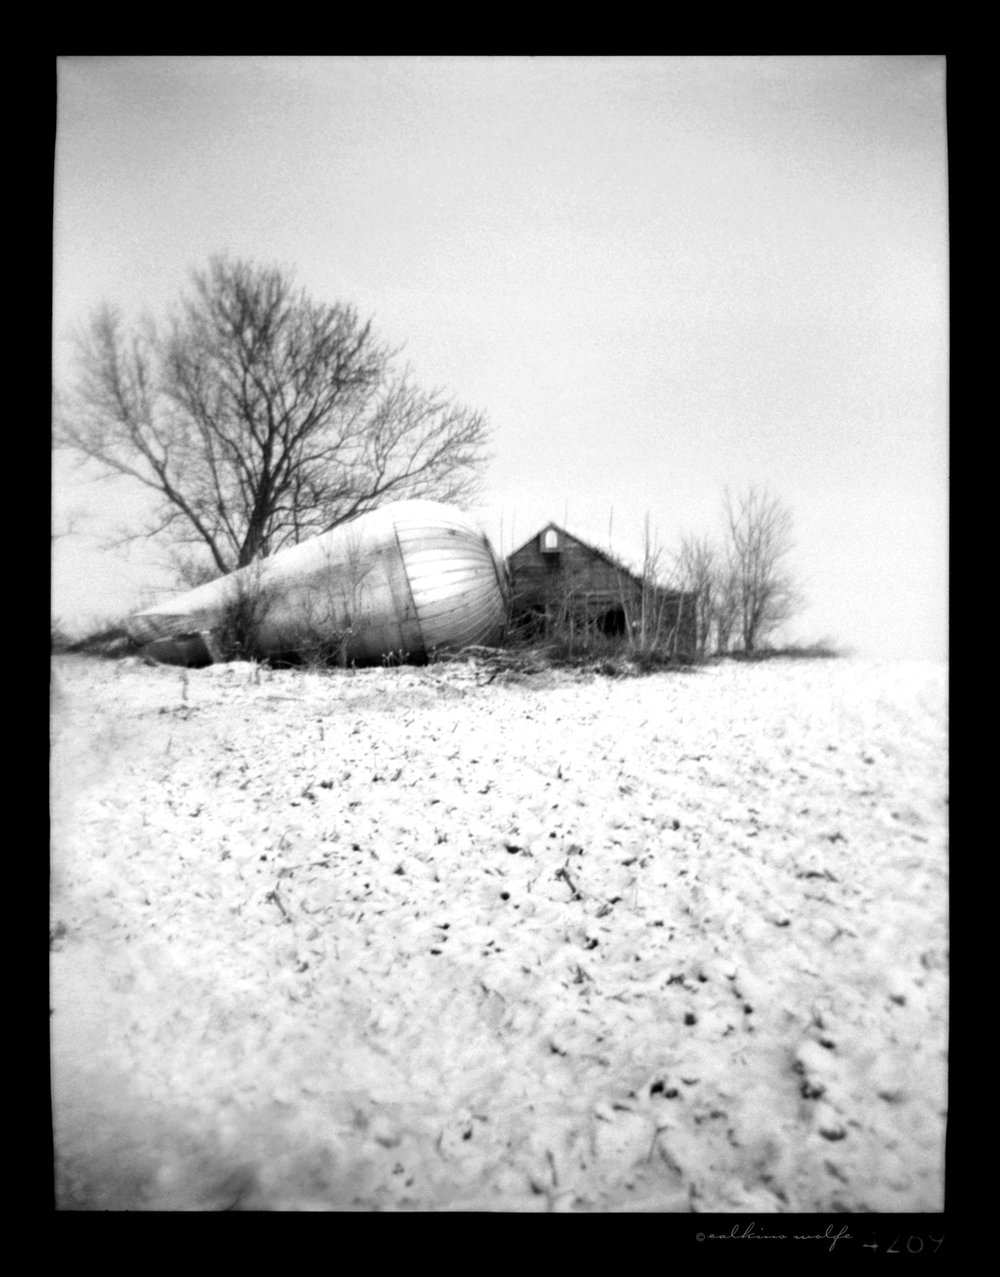 Fallen     Alternative Cameras: Pinhole to Plastic     Group Exhibition,  PhotoPlace Gallery  Middlebury, Vermont - December 2015 / January 2016. One of 35 images selected by juror and award winning fine art and commercial photographer,  Susan Burnstine .